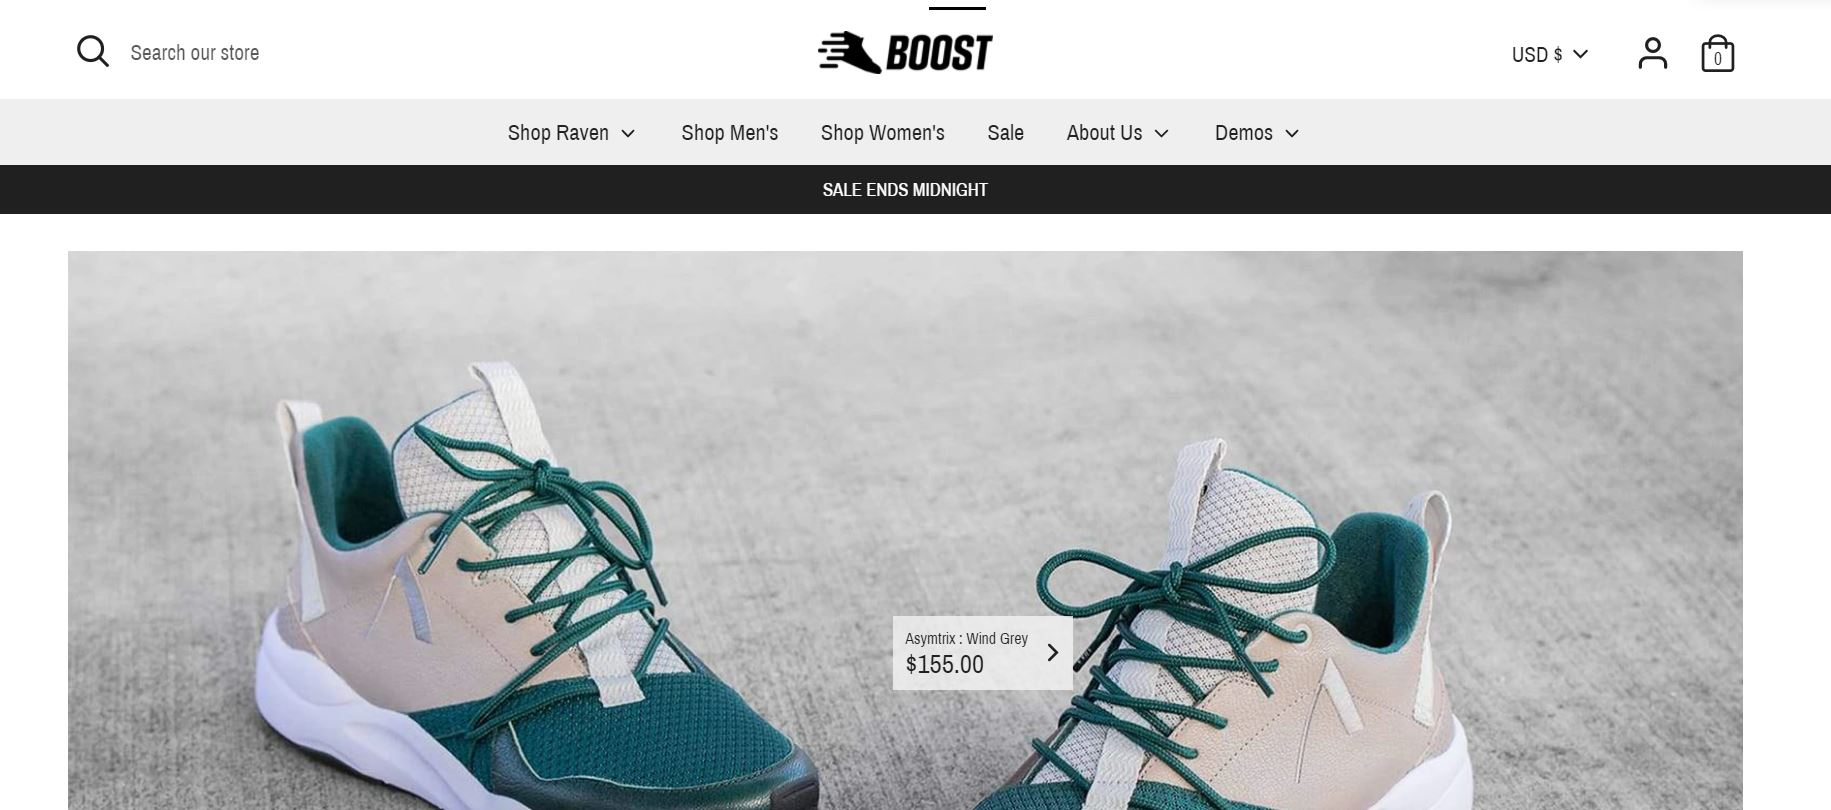 best shopify themes 2021